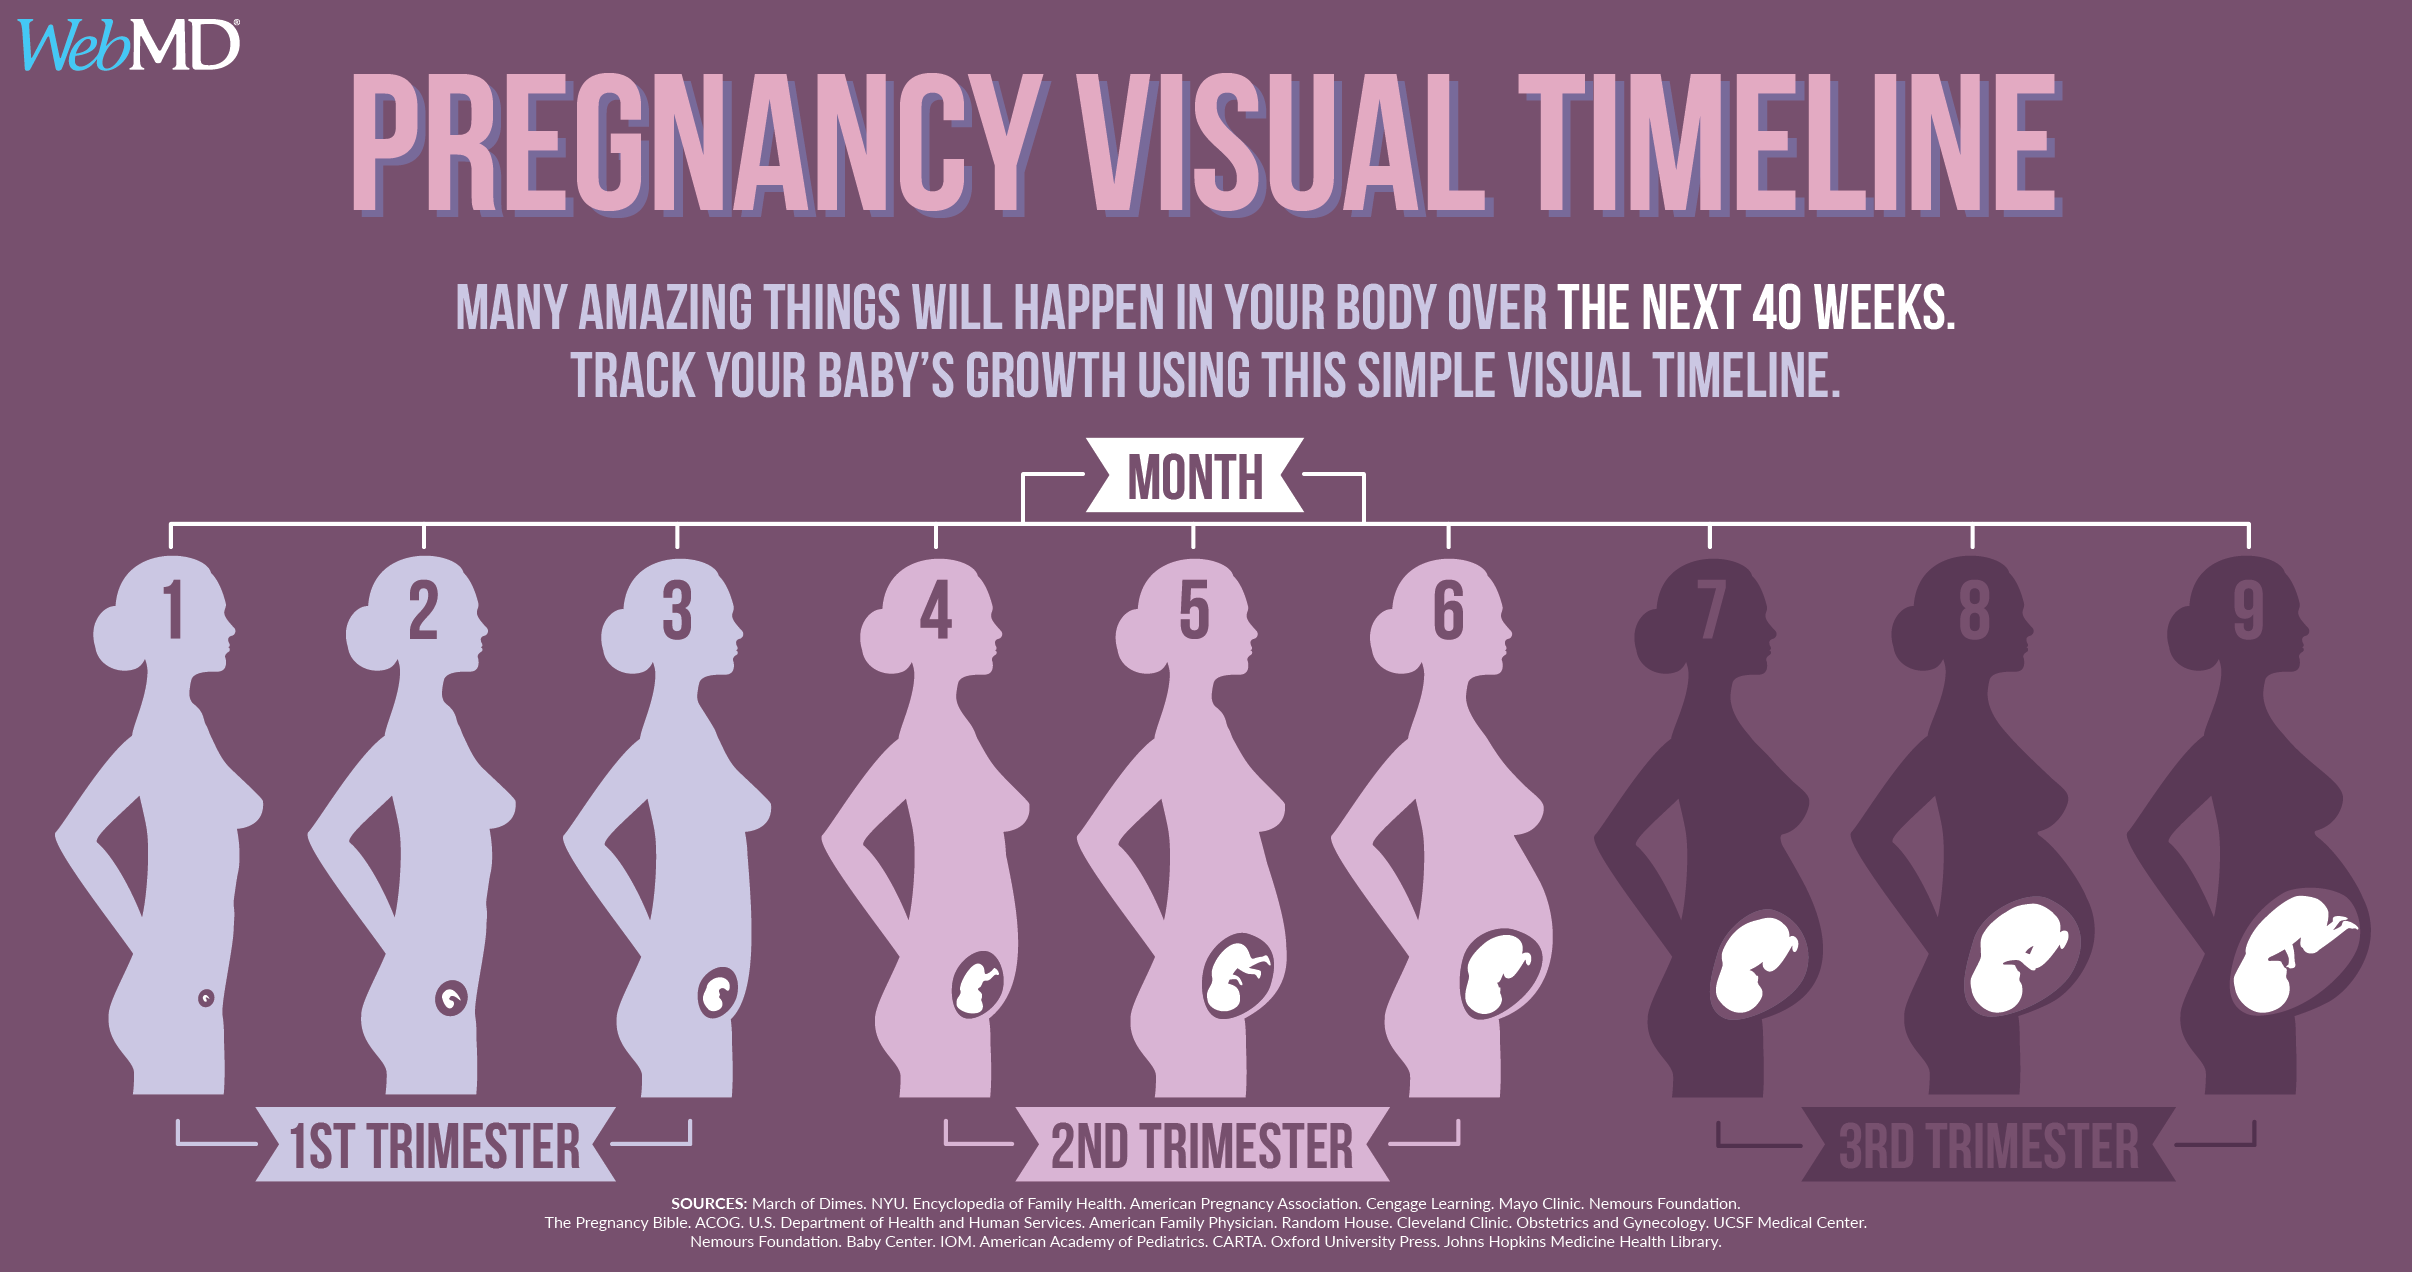 Pregnancy Timeline: Fetal Development Week-by-Week with